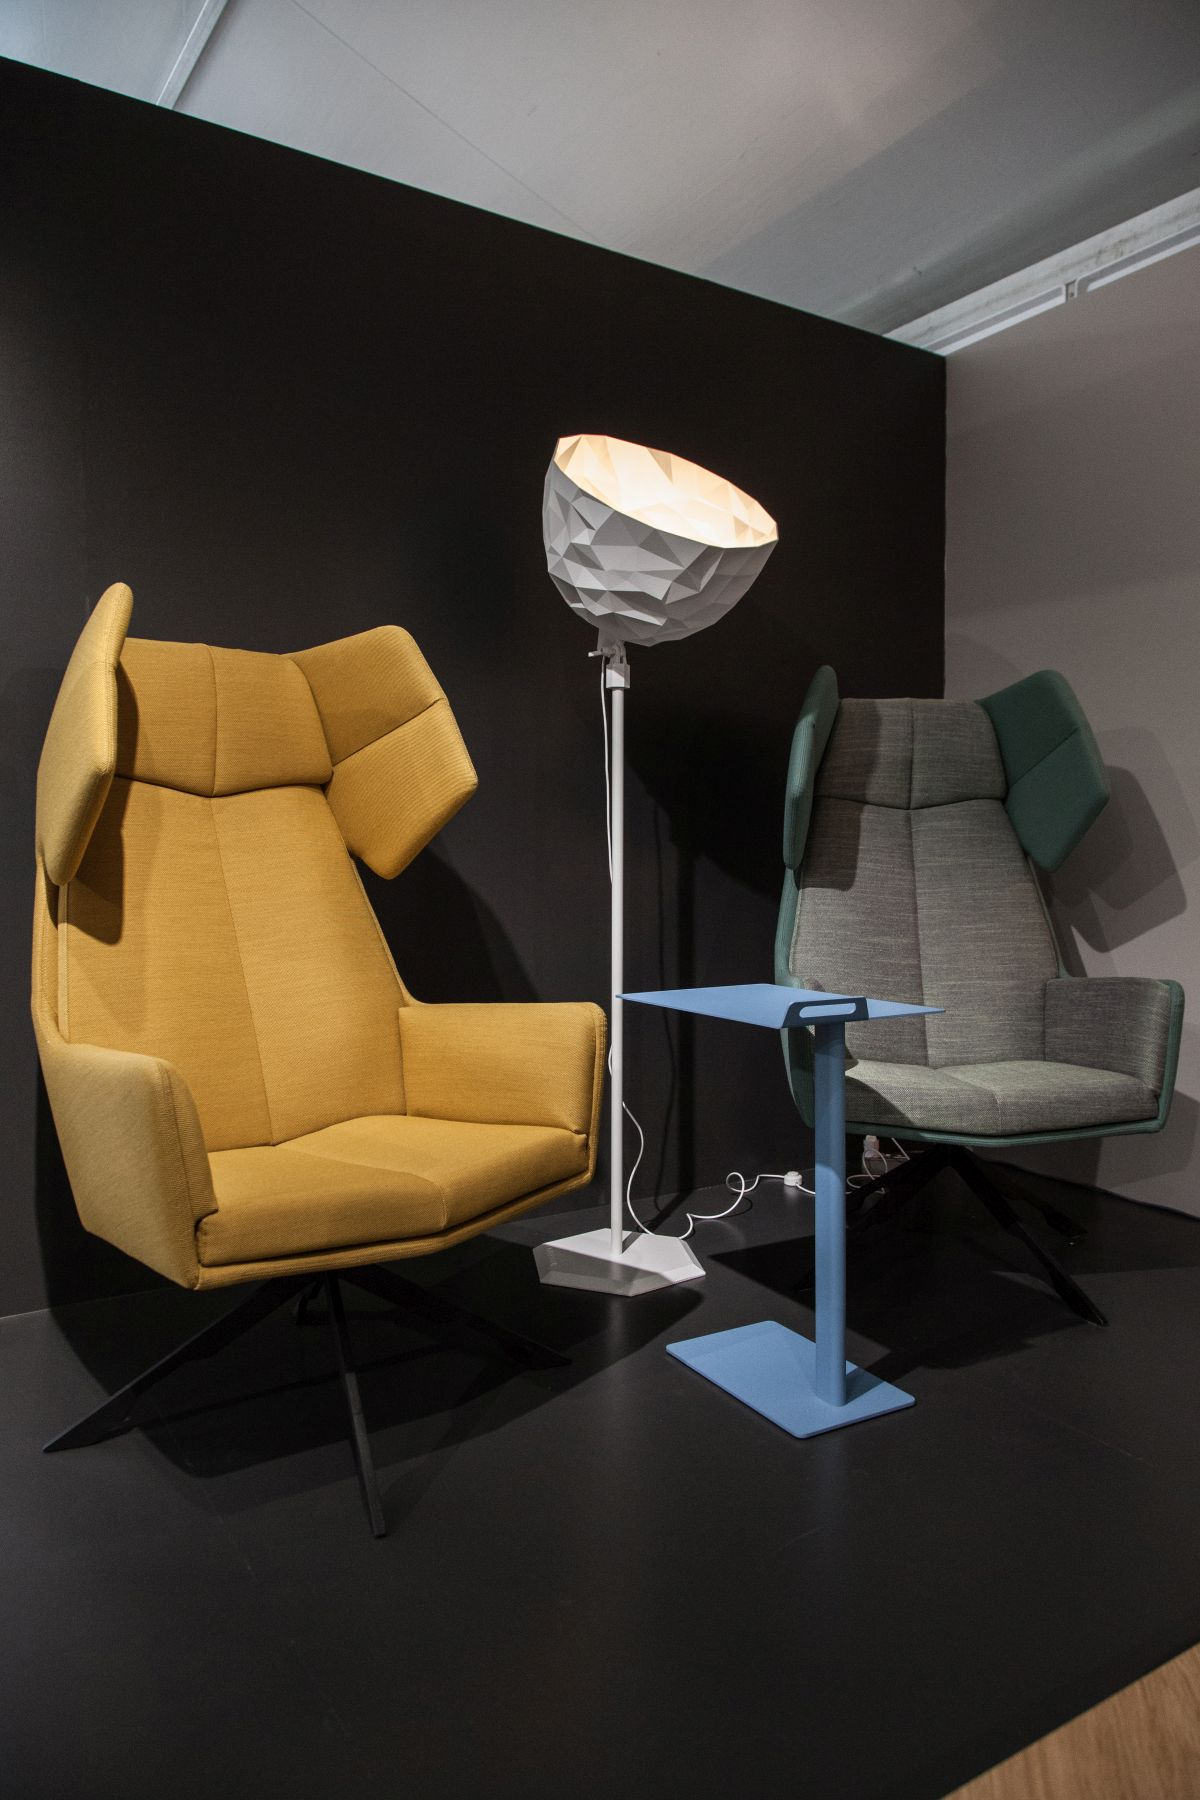 large-wingback-chairs-add-privacy